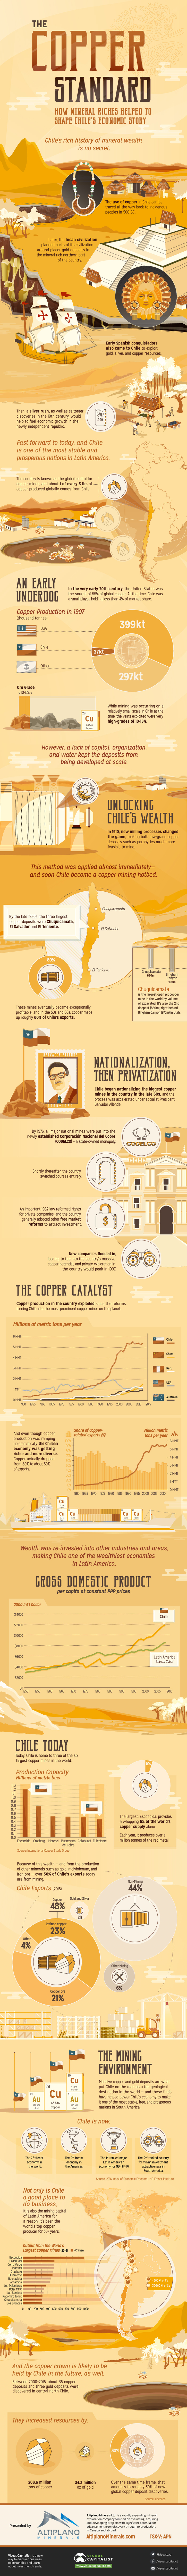 How Copper Riches Helped Shape Chile's Economic Story